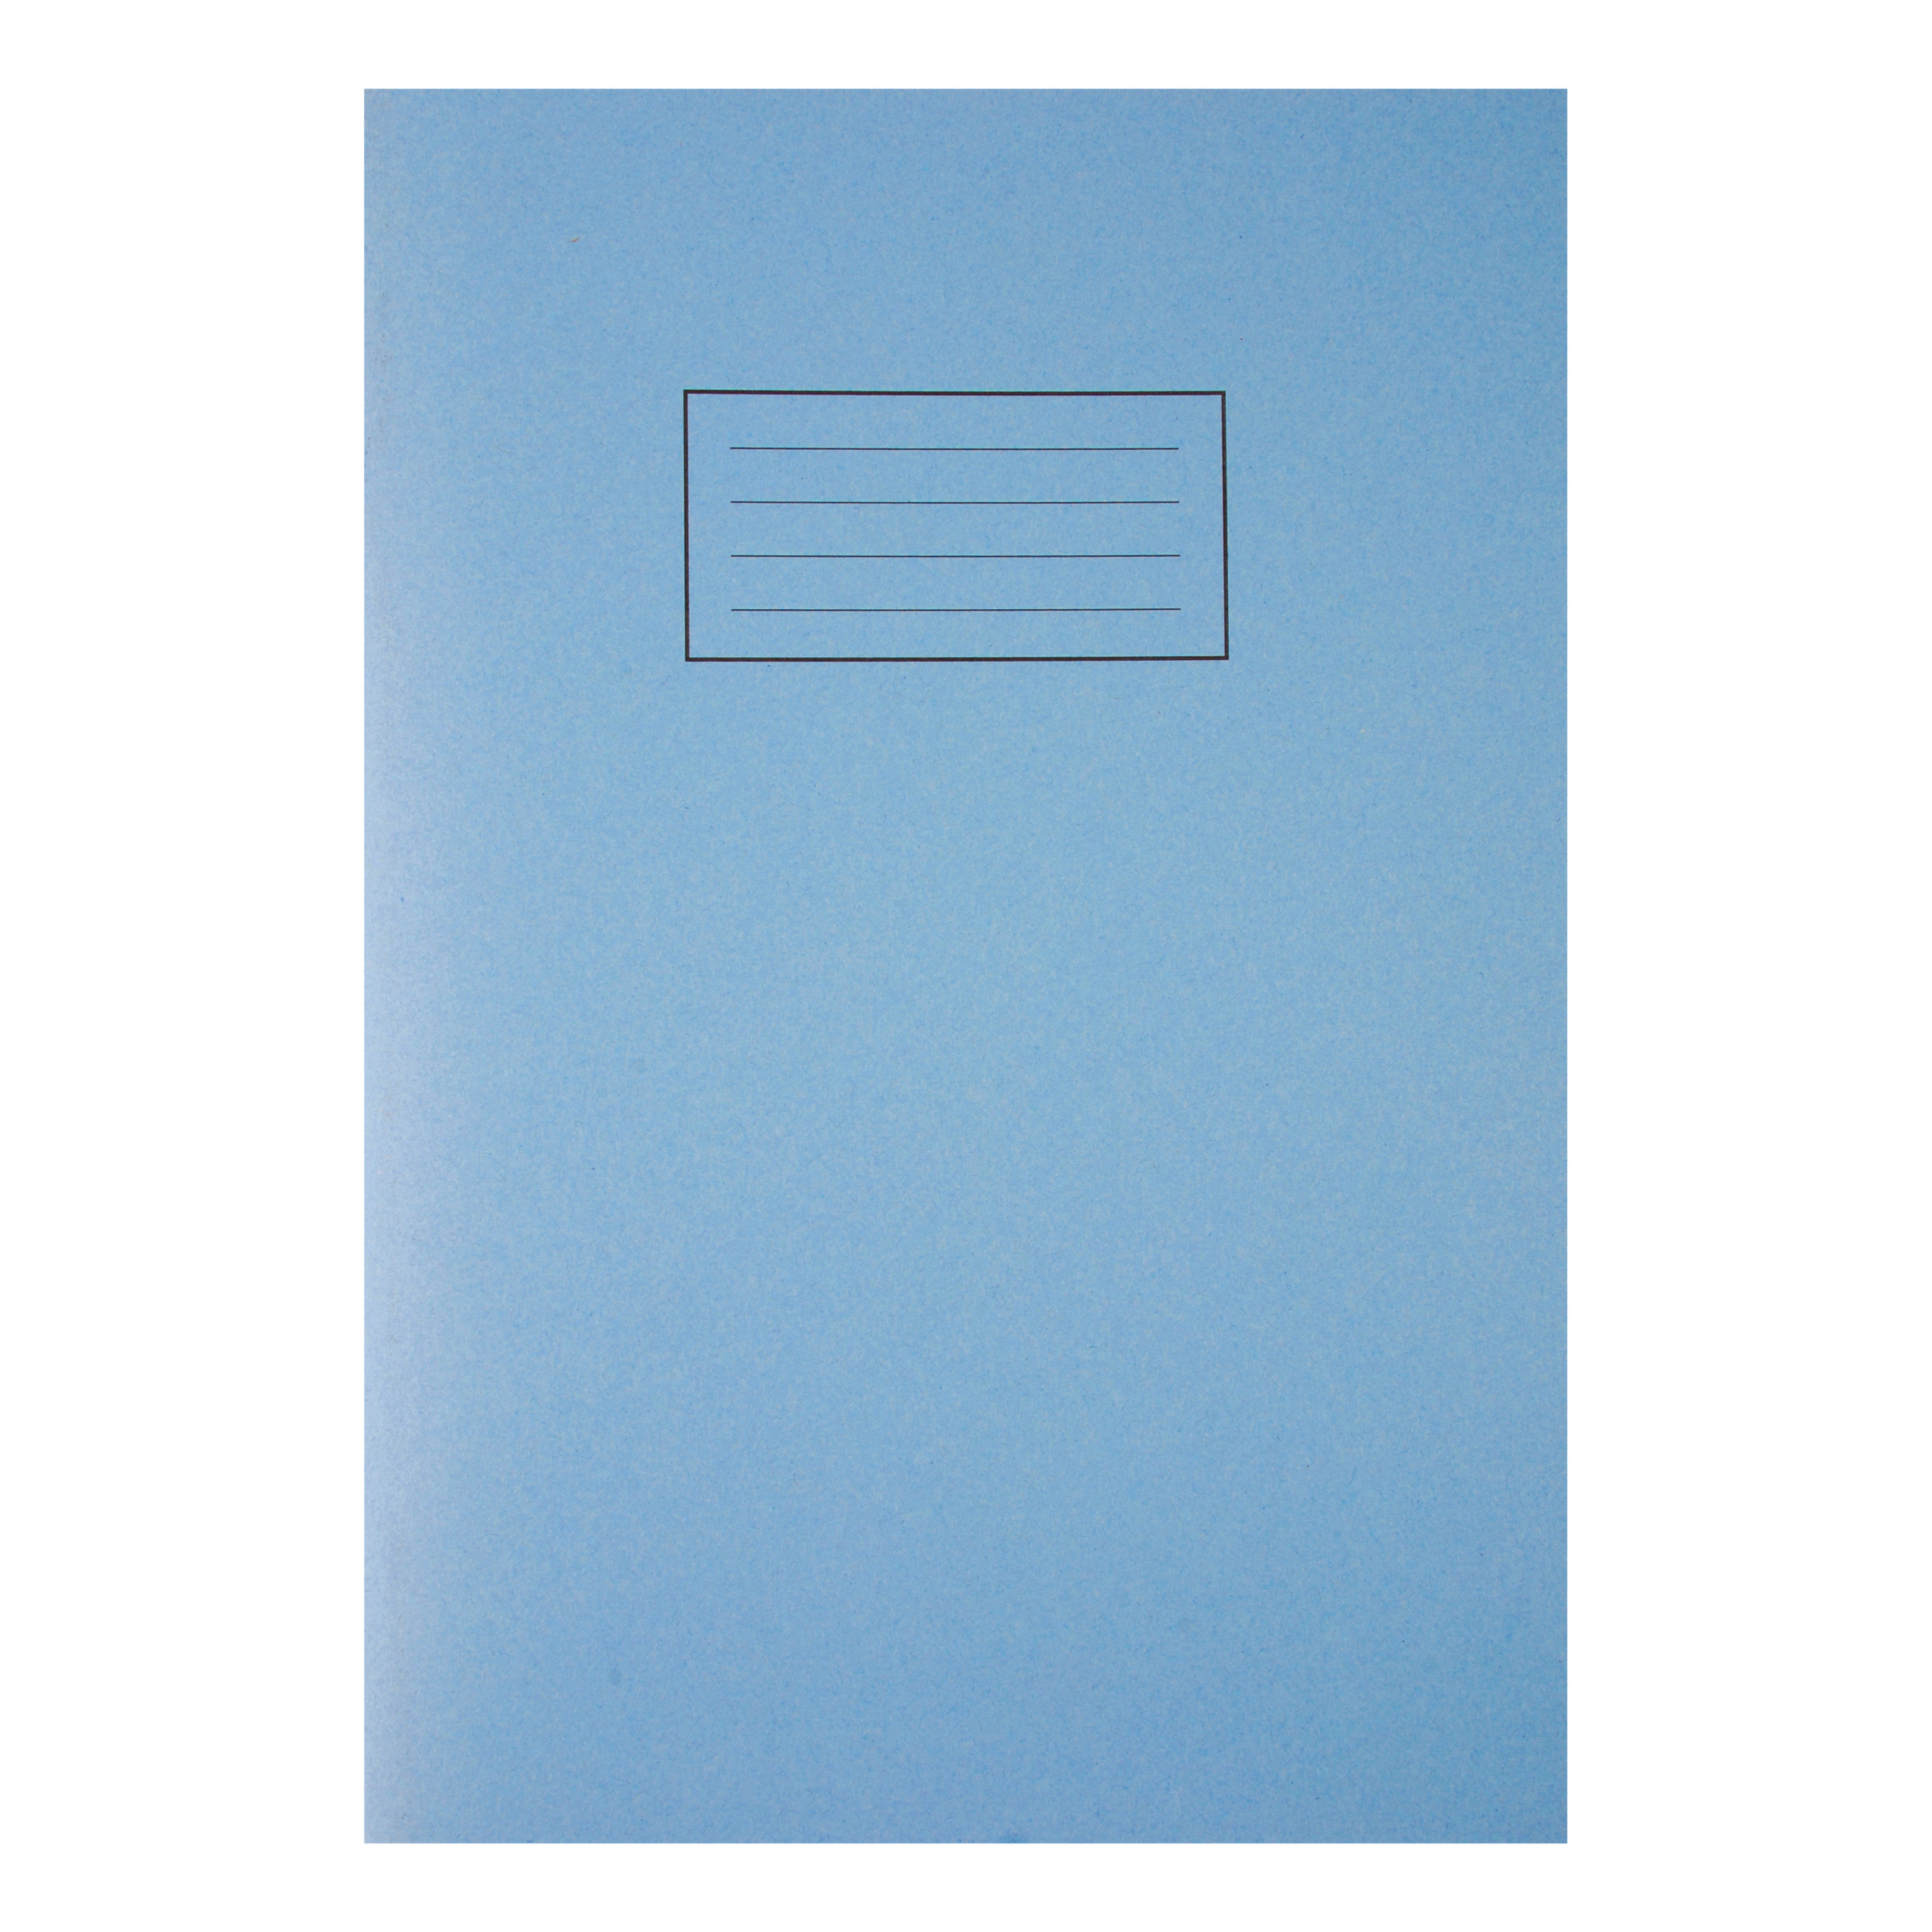 Exercise Books Silvine Exercise Book Plain 80 Pages 75gsm A4 Blue Ref EX114 Pack 10